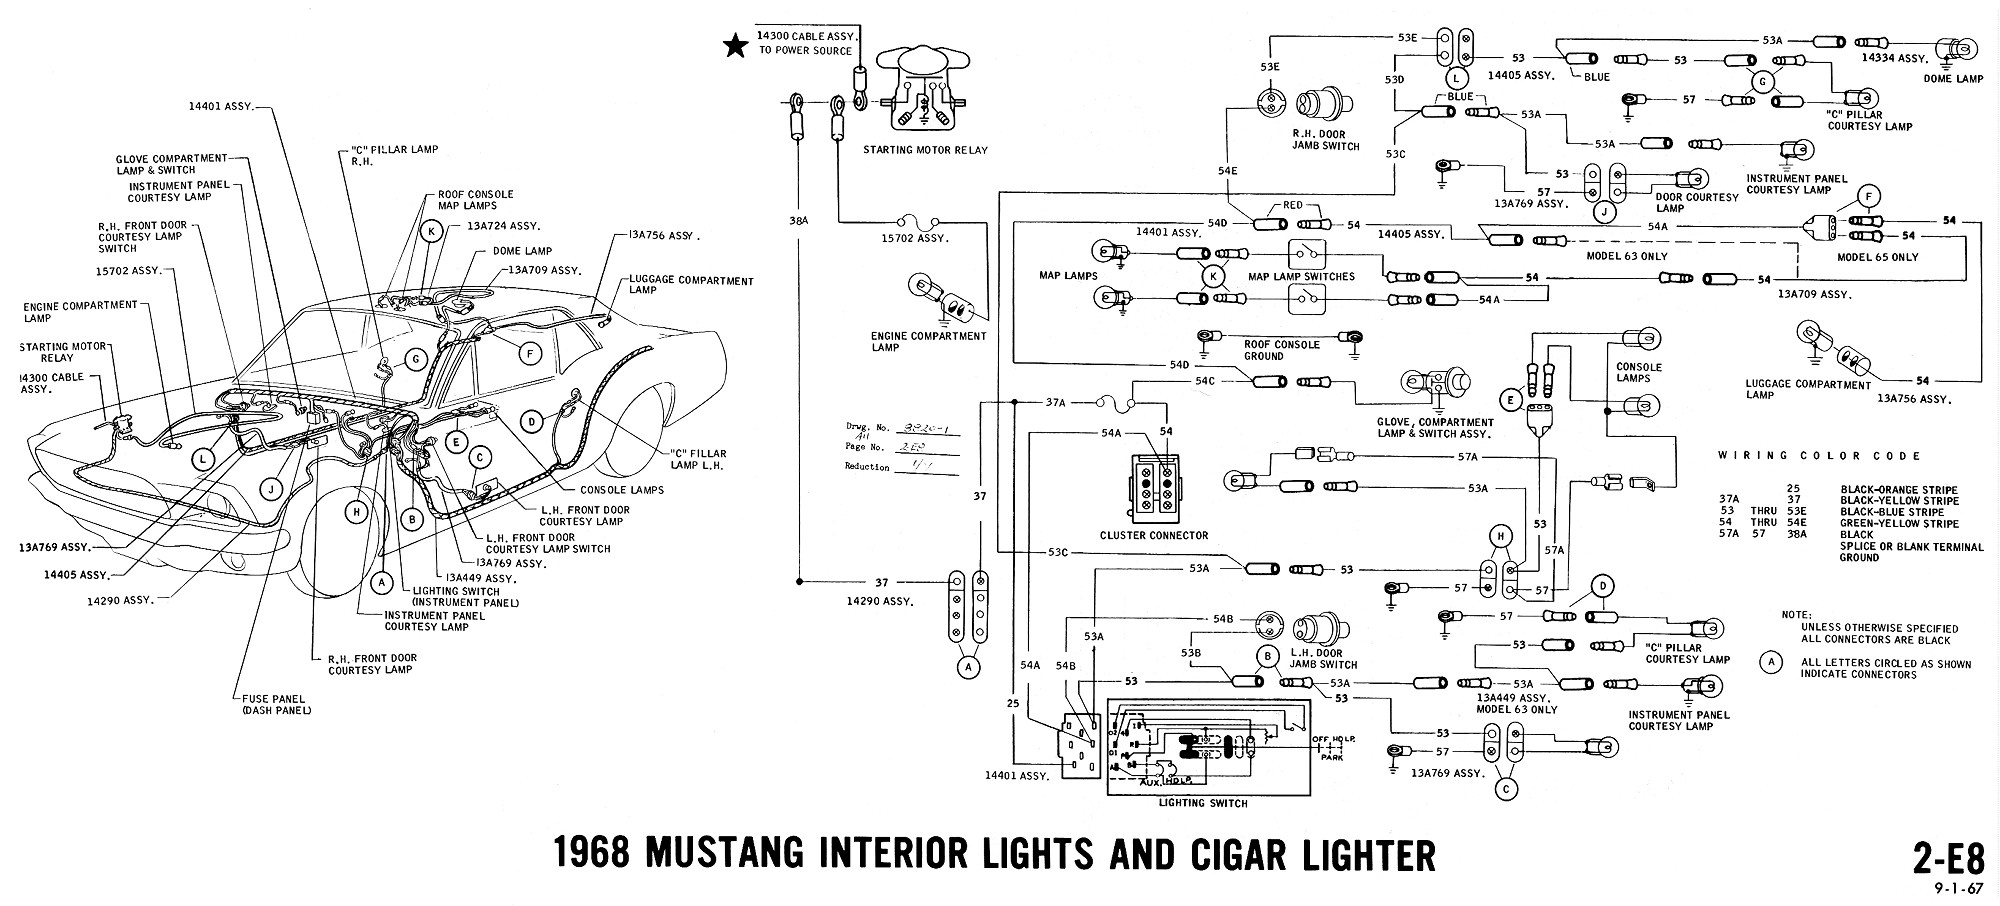 84 K5 Blazer Wiring Diagram in addition Showthread also 1962 74 Tach Drive Distributor Restoration additionally Lincoln All Models 1965 Windows Wiring moreover 1987 Chevy Truck Steering Column Wiring Diagram. on 67 chevy truck wiring diagram